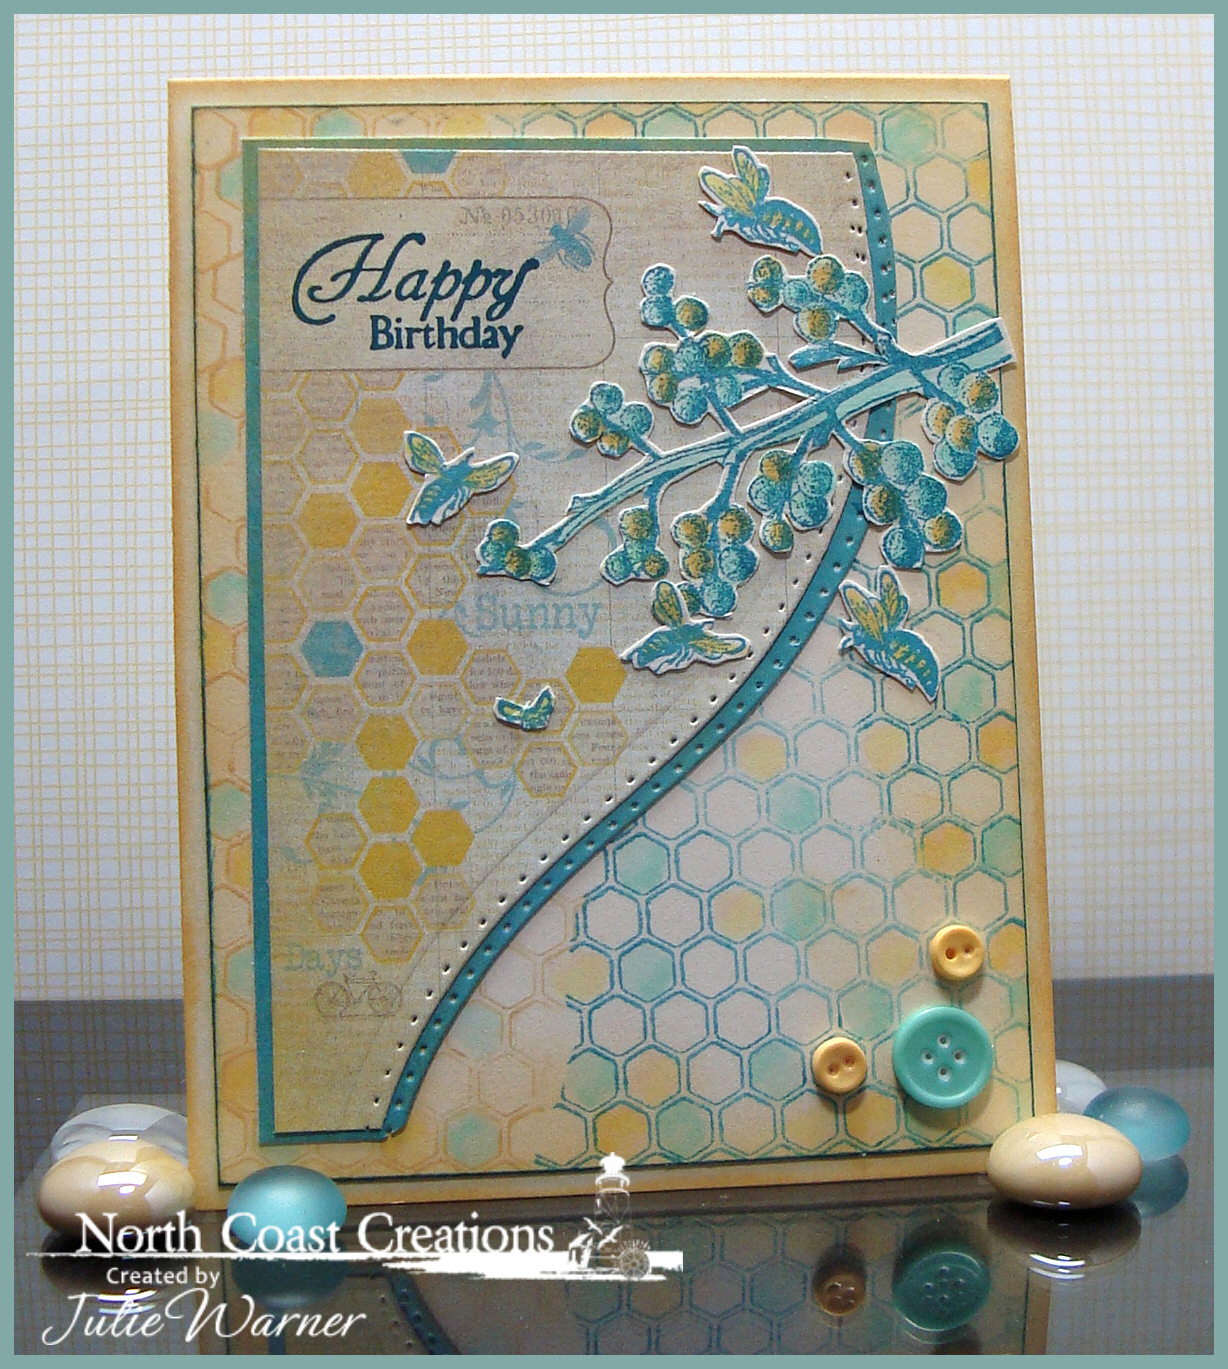 Stamps - North Coast Creations Floral Sentiments 2, ODBD Honeycomb Background, ODBD Clover